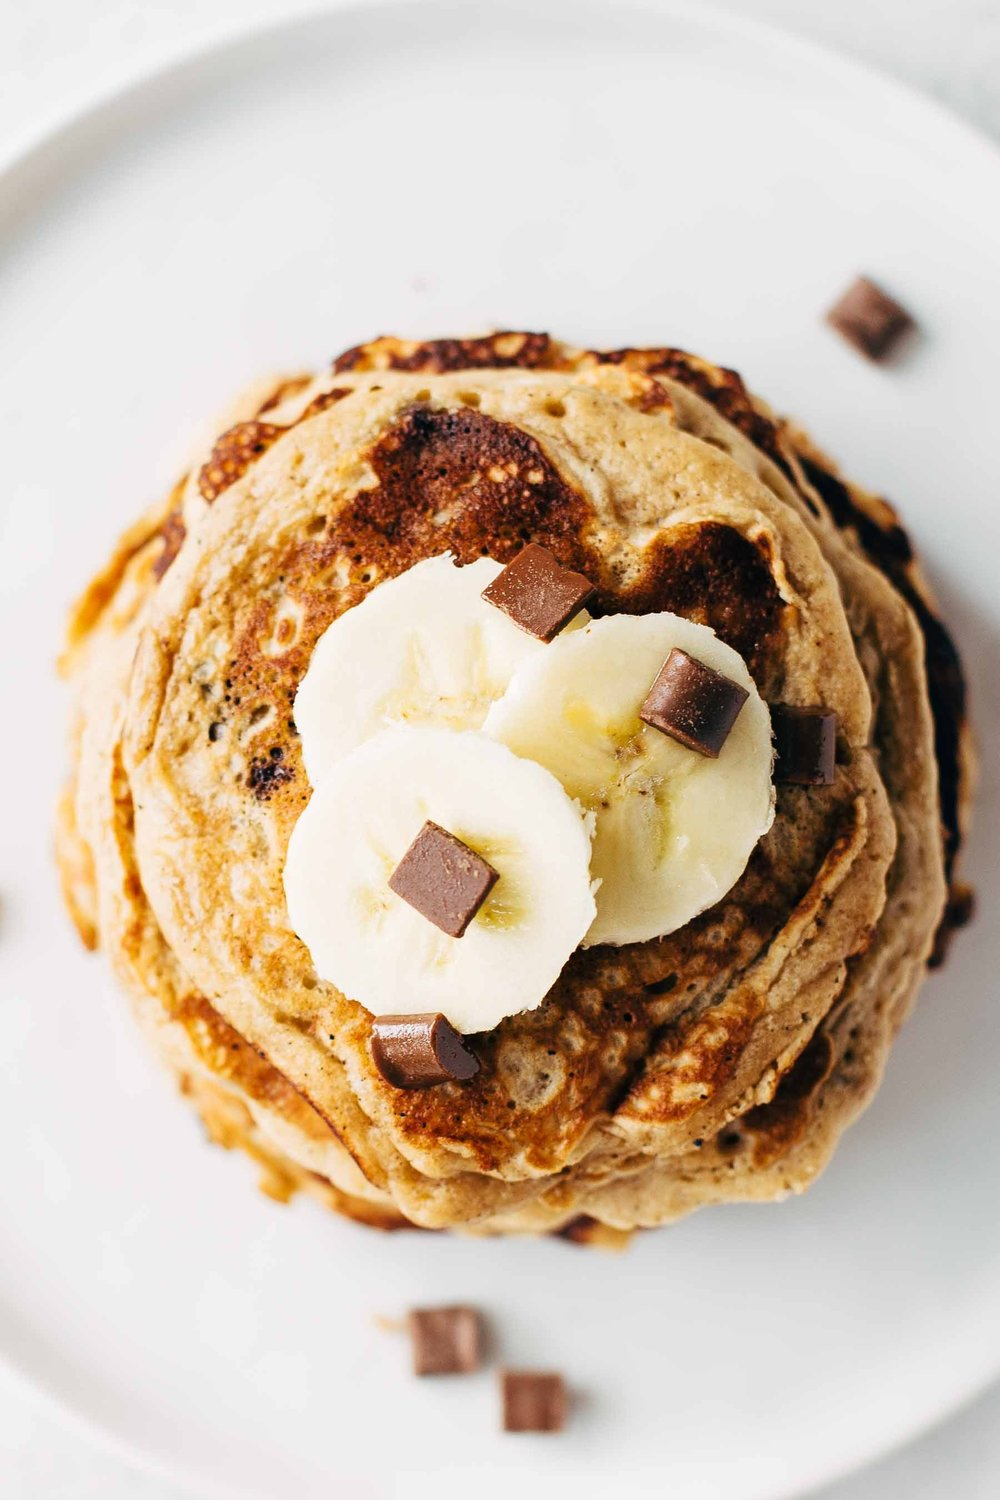 Banana-chocolate-chip-pancakes-3-1.jpg